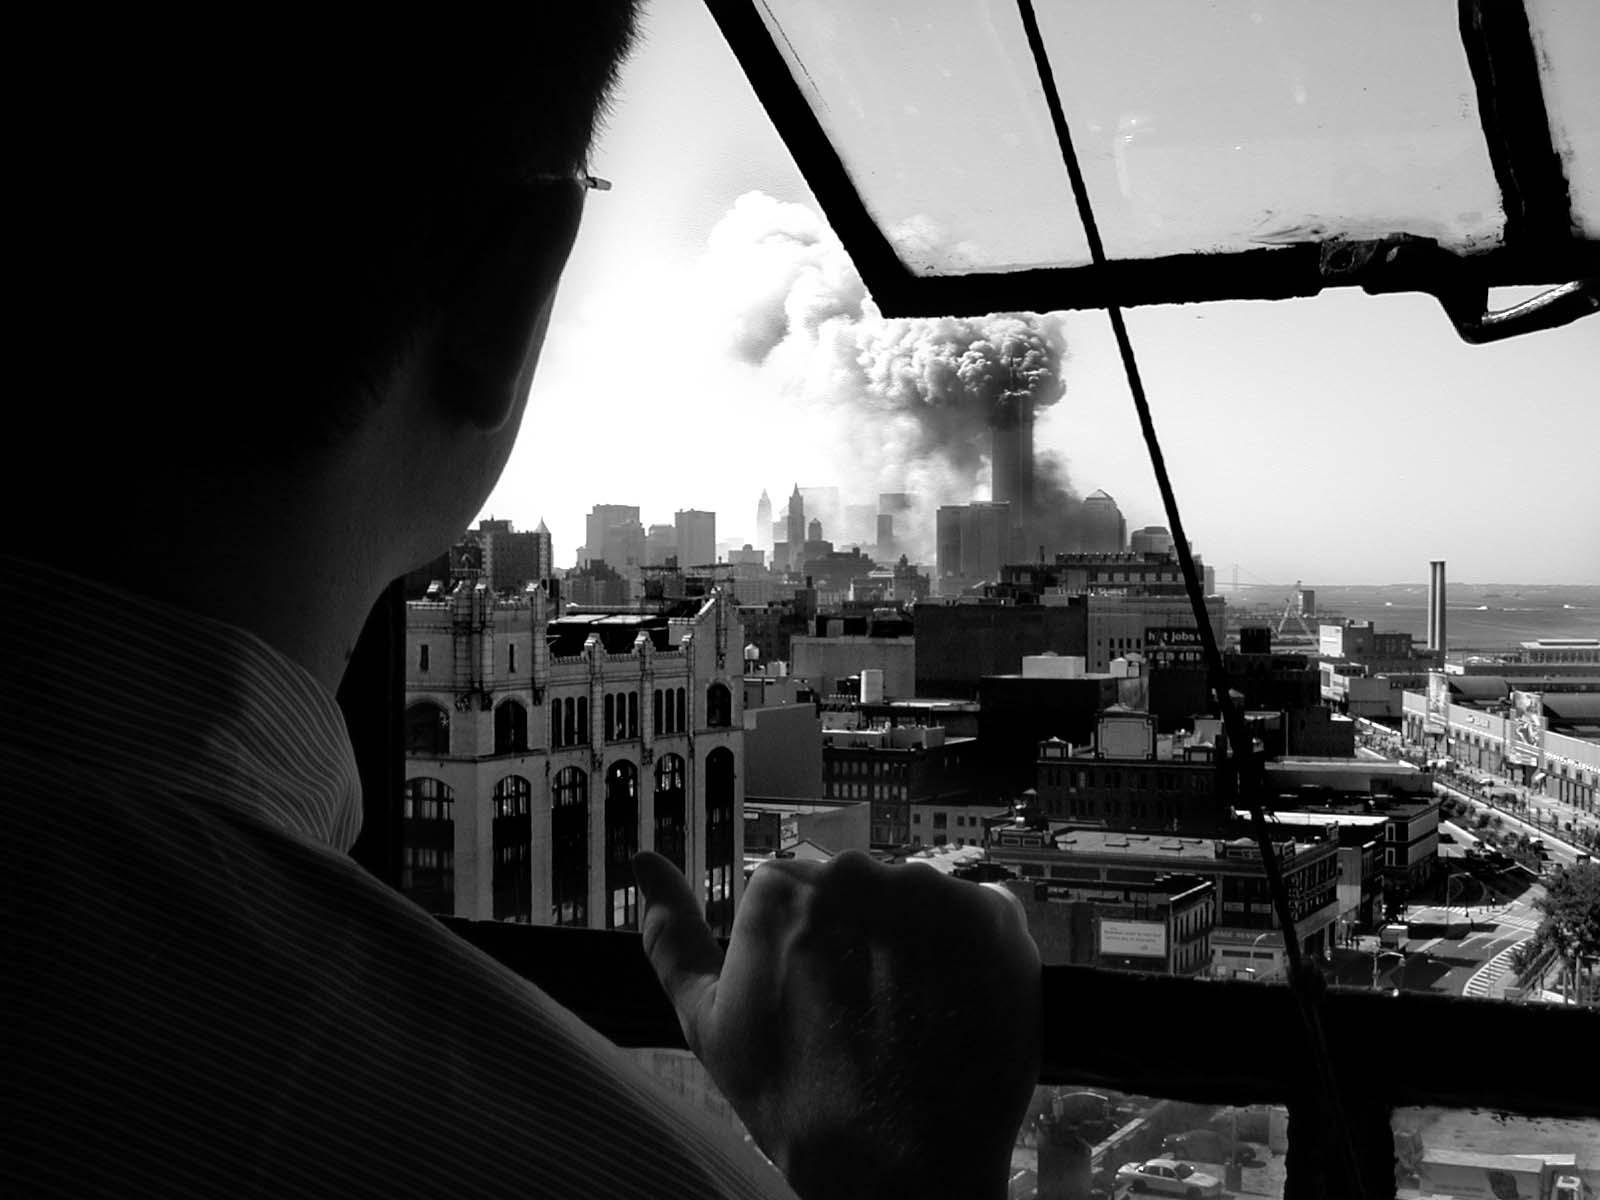 022 - 10.20AM - man watching north tower burning